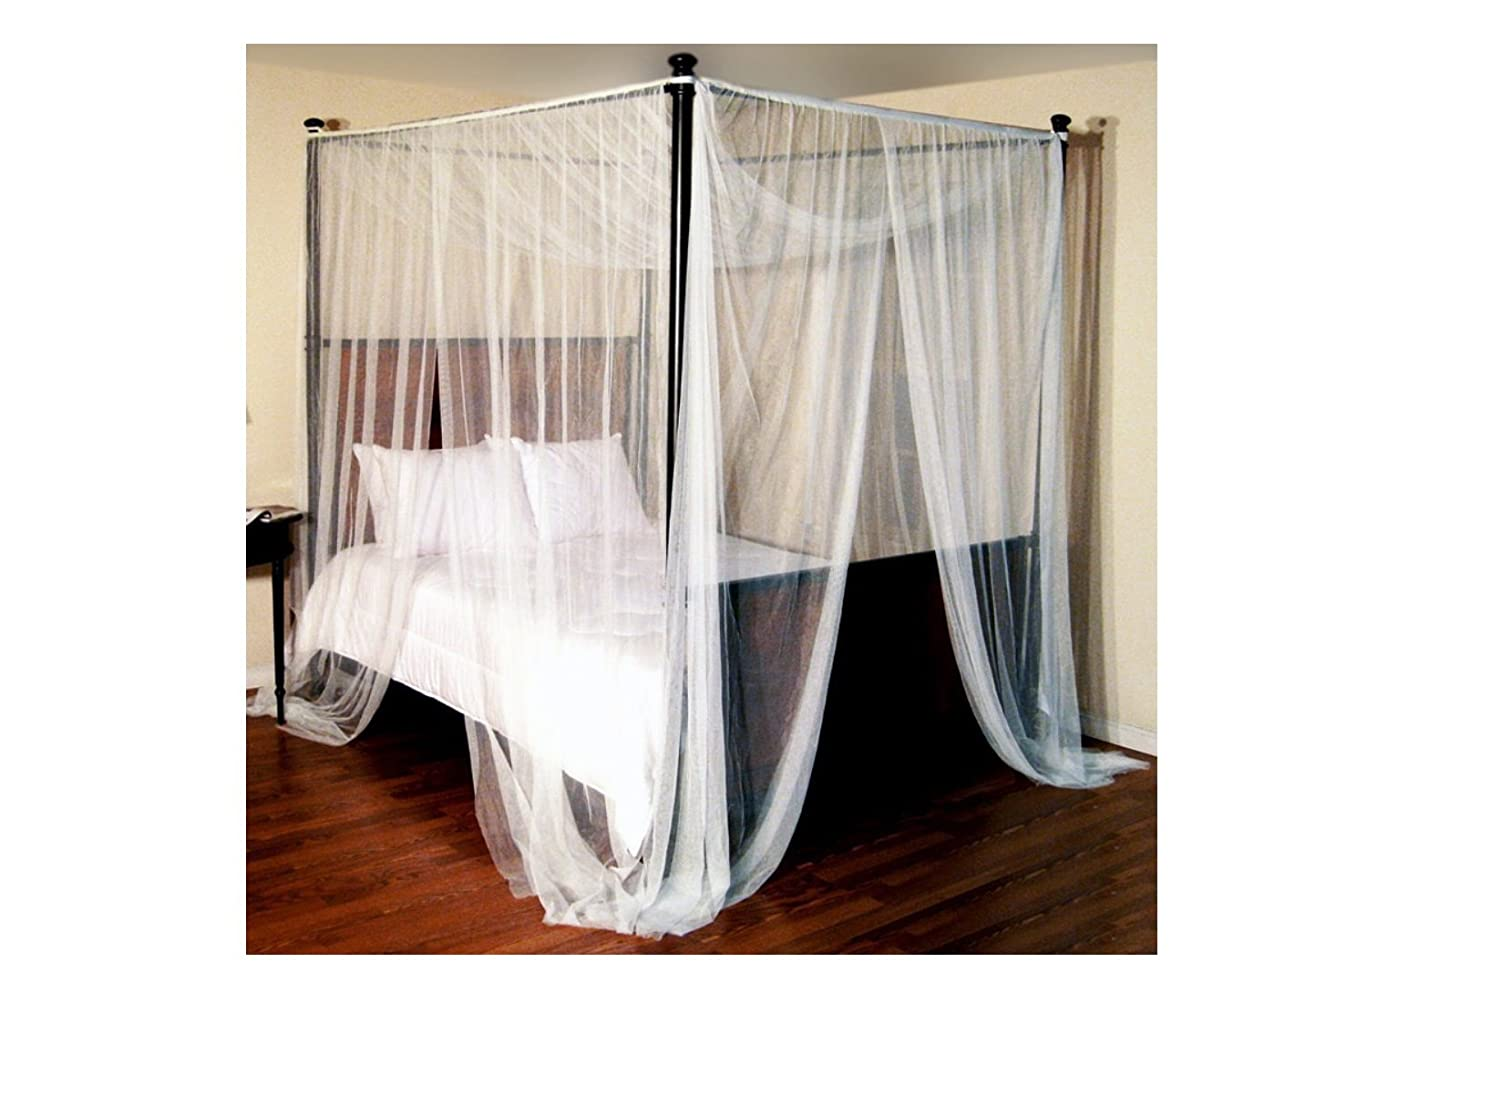 Casablanca Palace Four Poster Bed Canopy Net PCAN